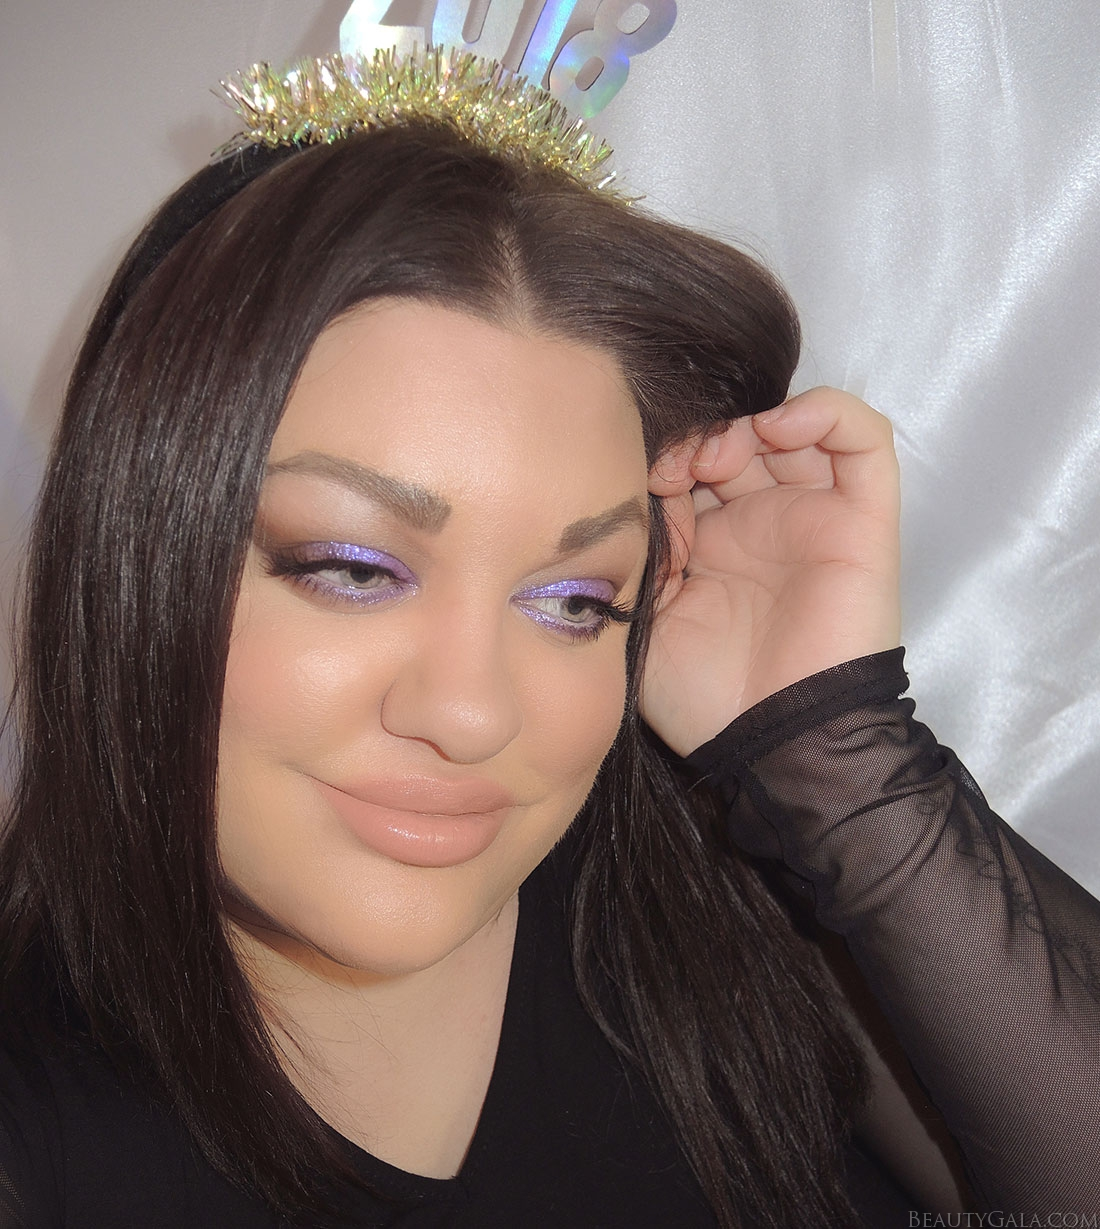 new years eve makeup, colourpop dare, jaclyn hill morphe, jaclyn hill palette, purple eyeshadow